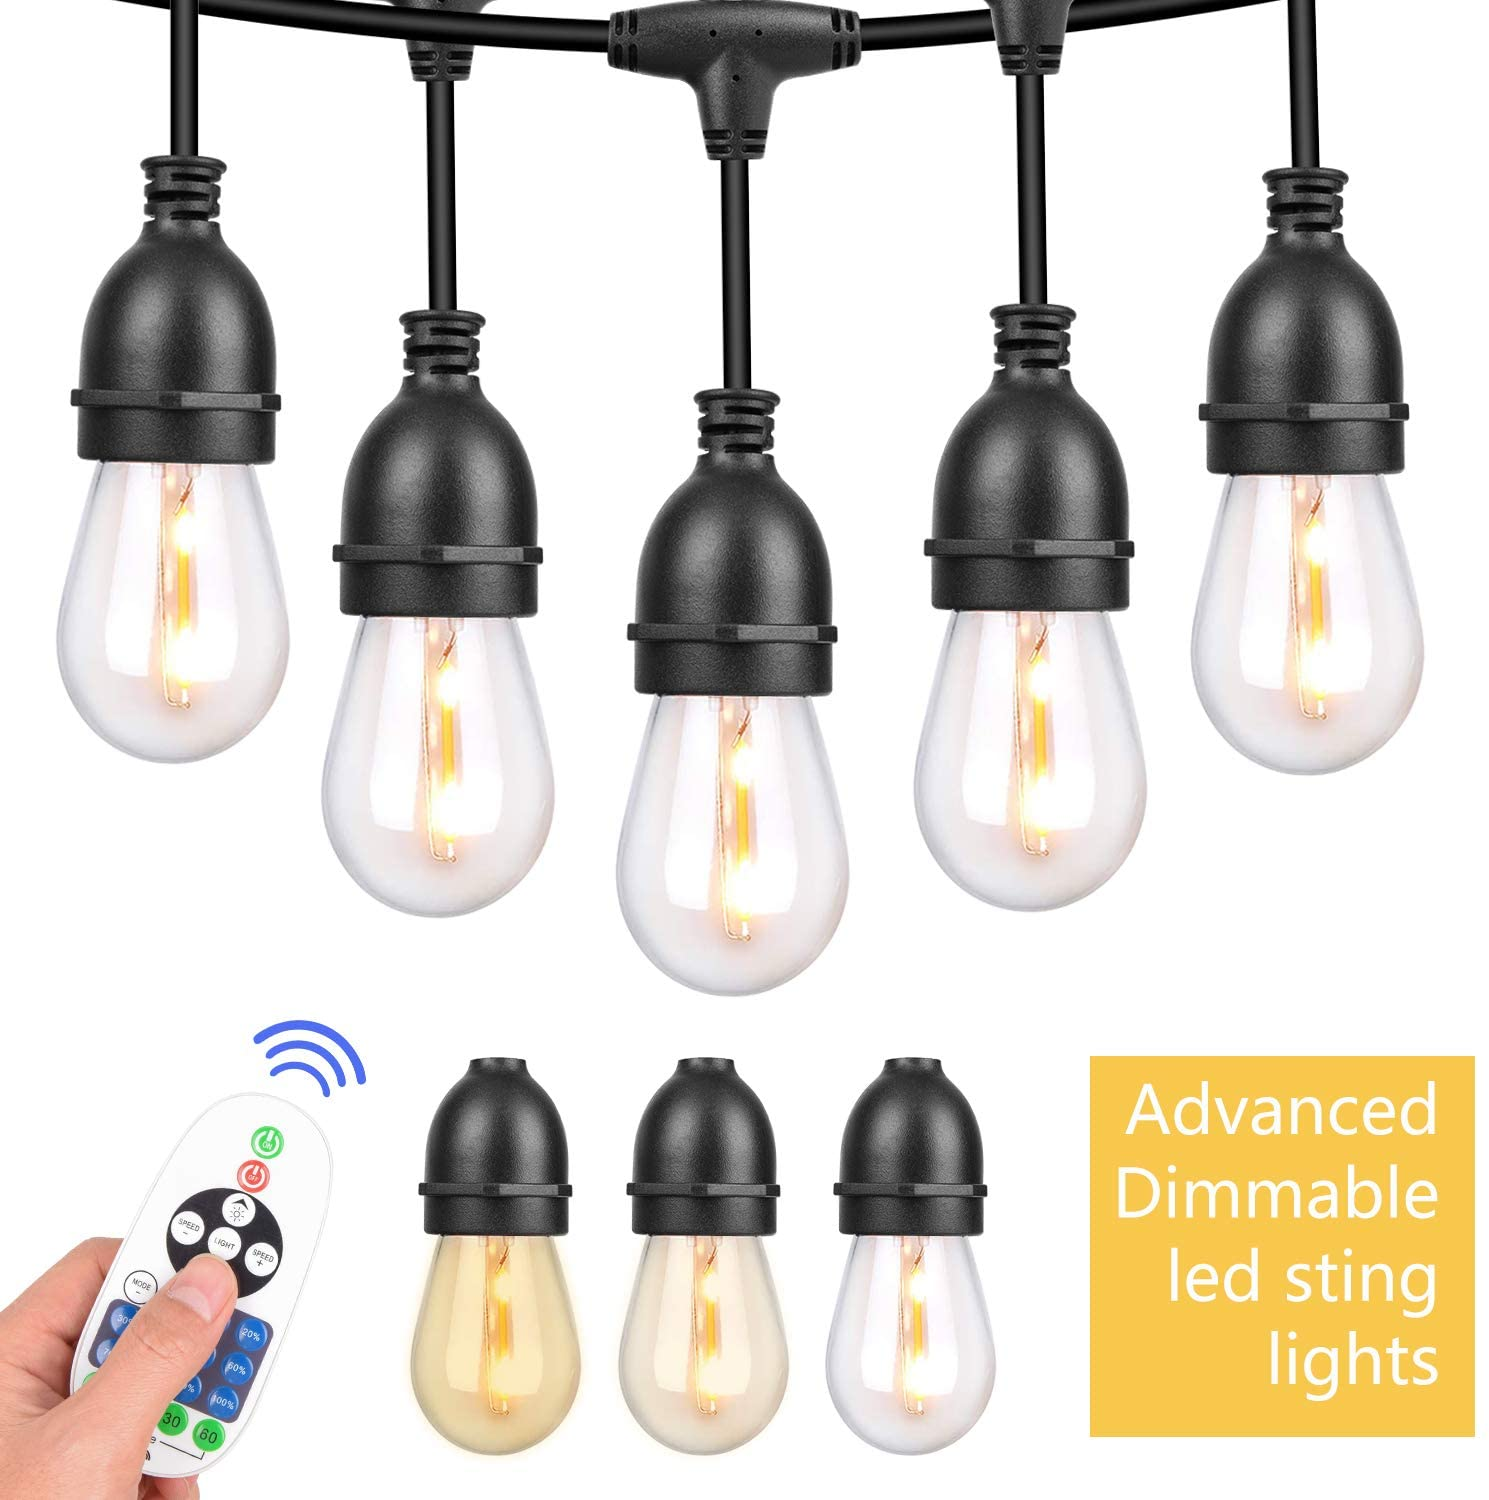 String Lights,Outdoor String Lights 42.3FT Weatherproof IP67 Window Curtain LED String Light Bulbs for Wedding Party Garden Wall Decoration Patio Bistro Dimmable Light with Wireless Remote Control